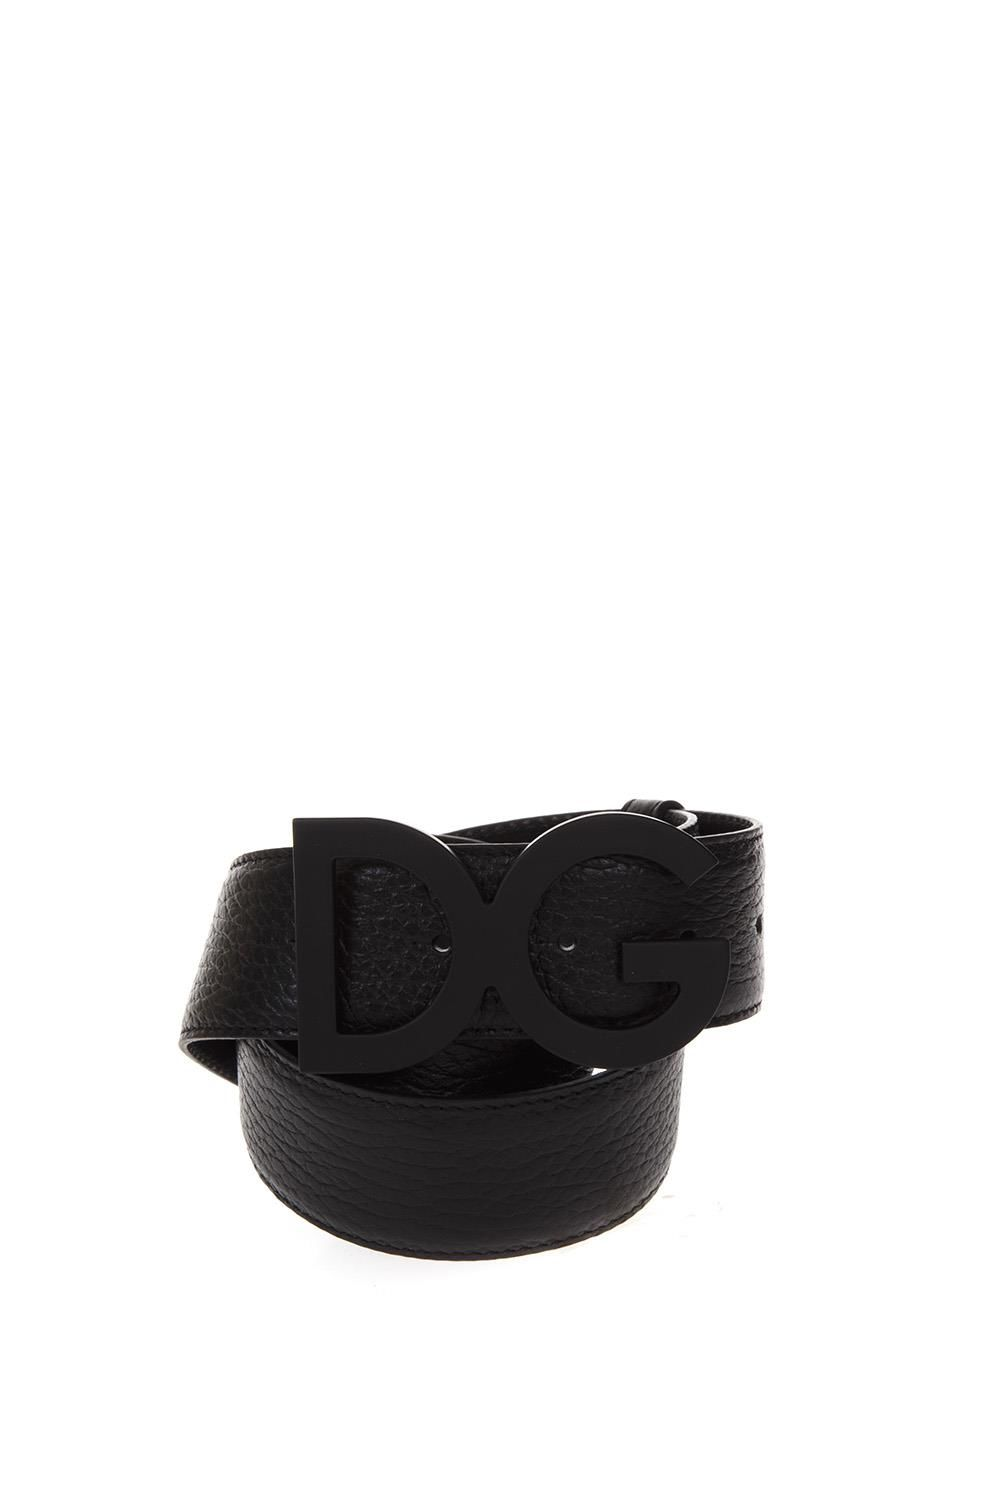 Dolce & Gabbana Leather Belt With Logoed Badge